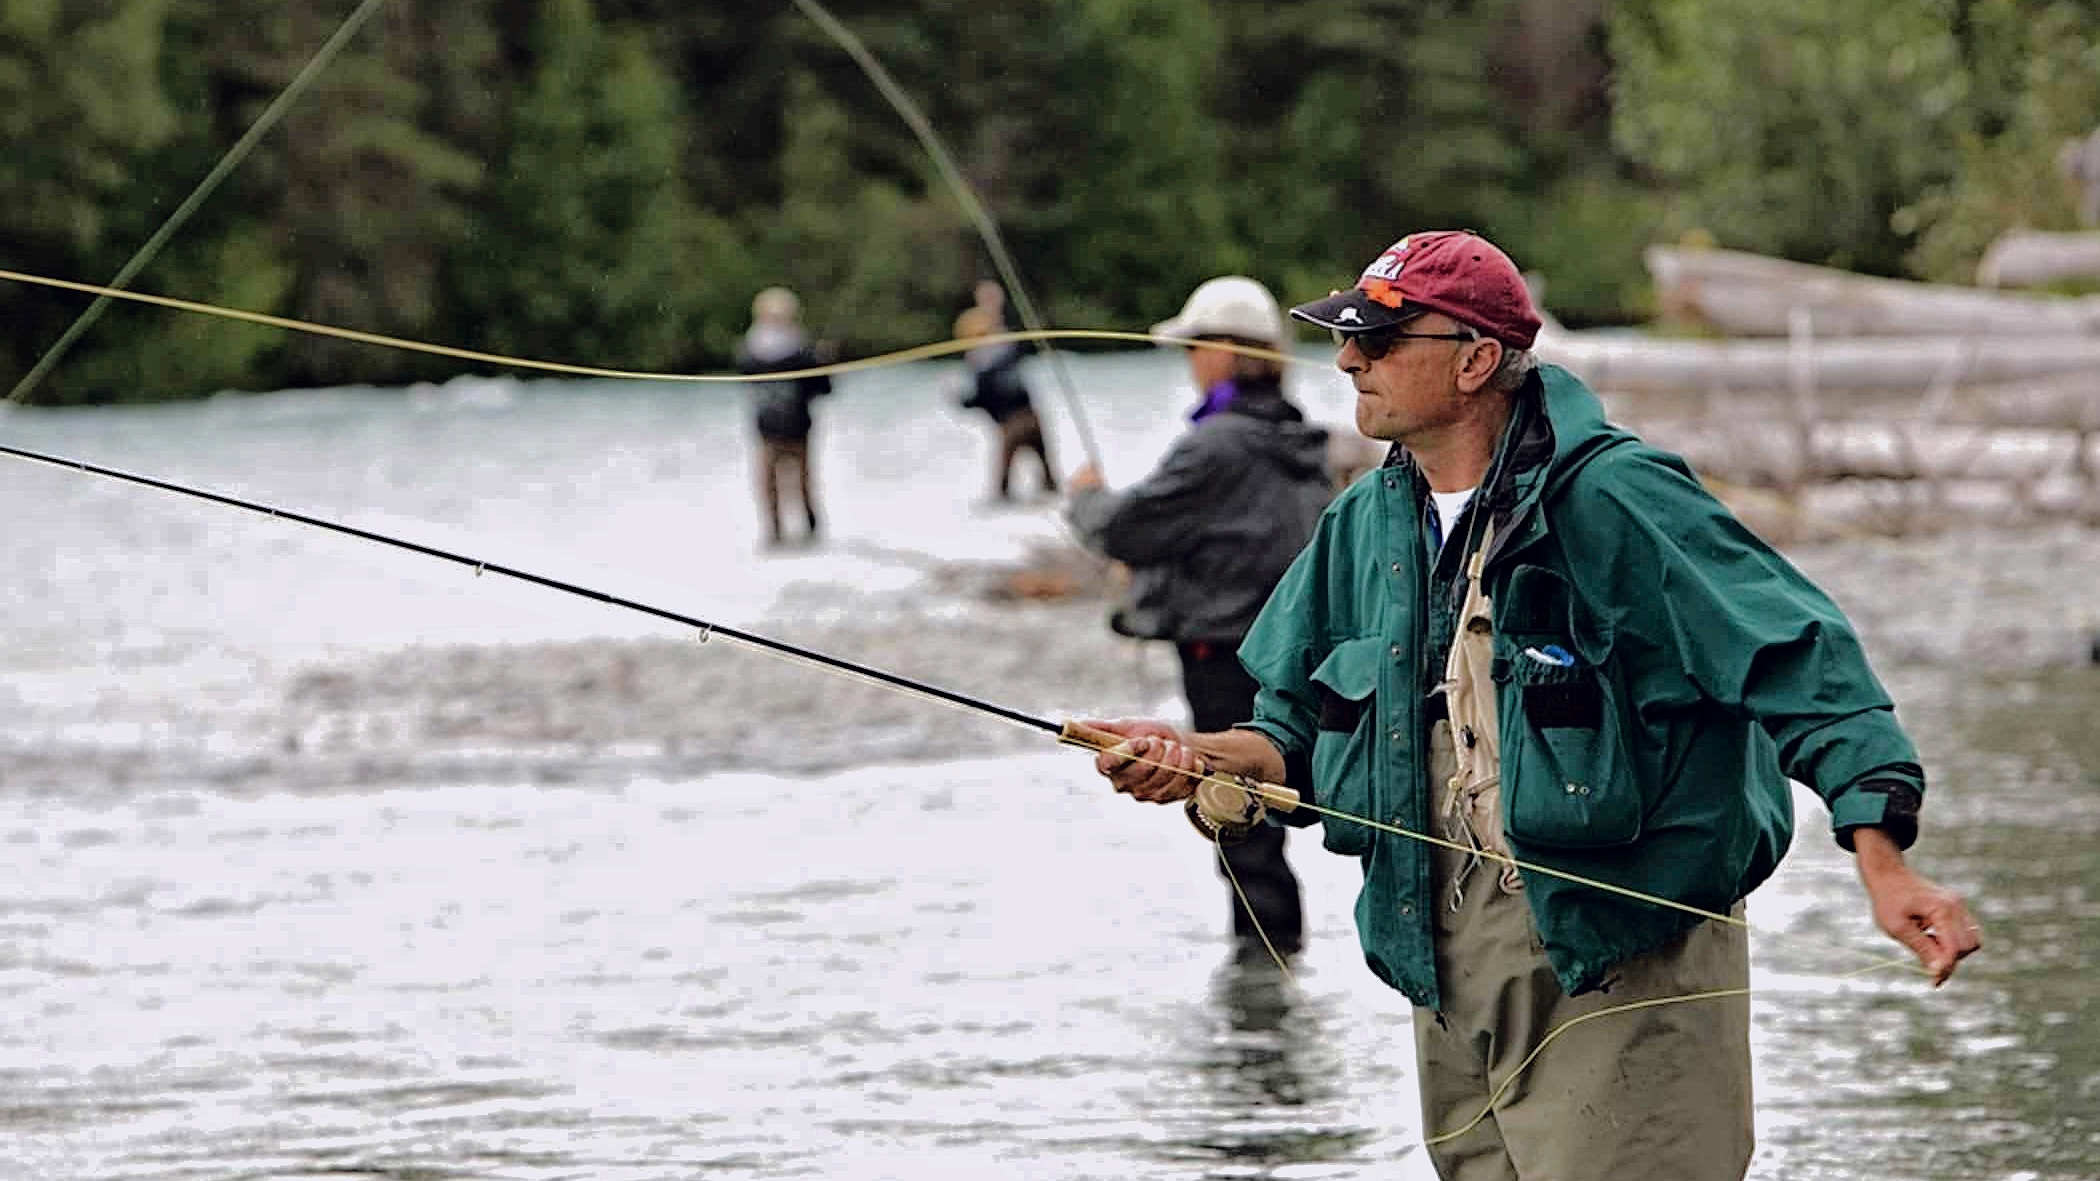 men-fly-fishing.jpg